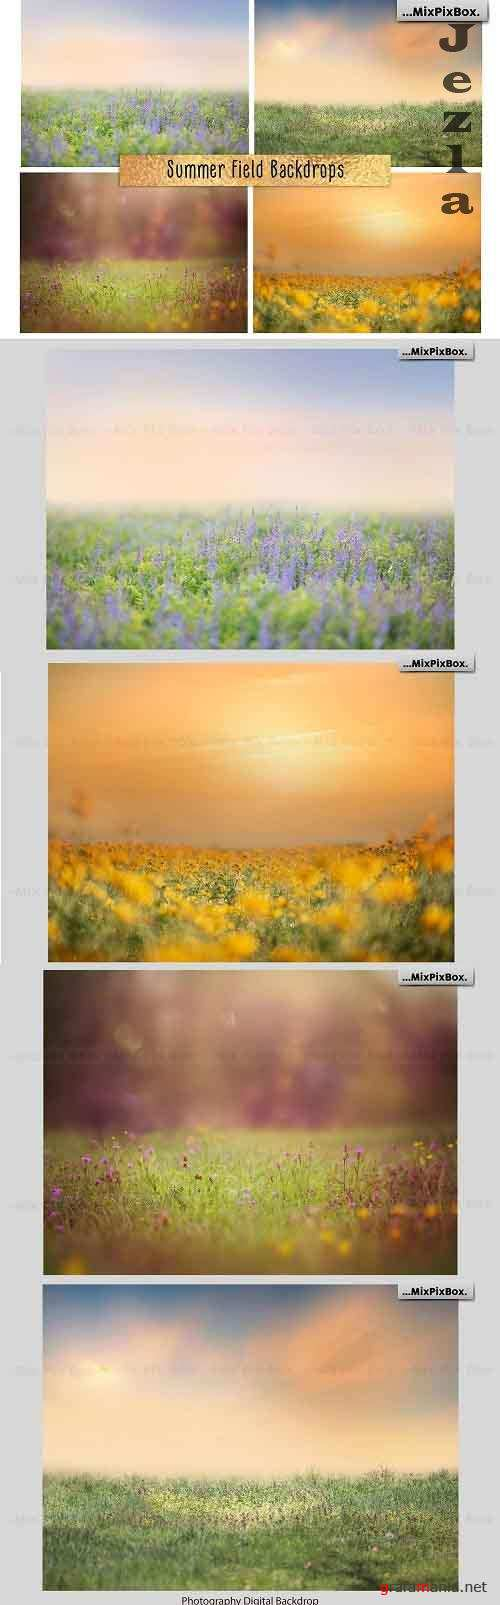 Summer Field Backdrops - 4970525